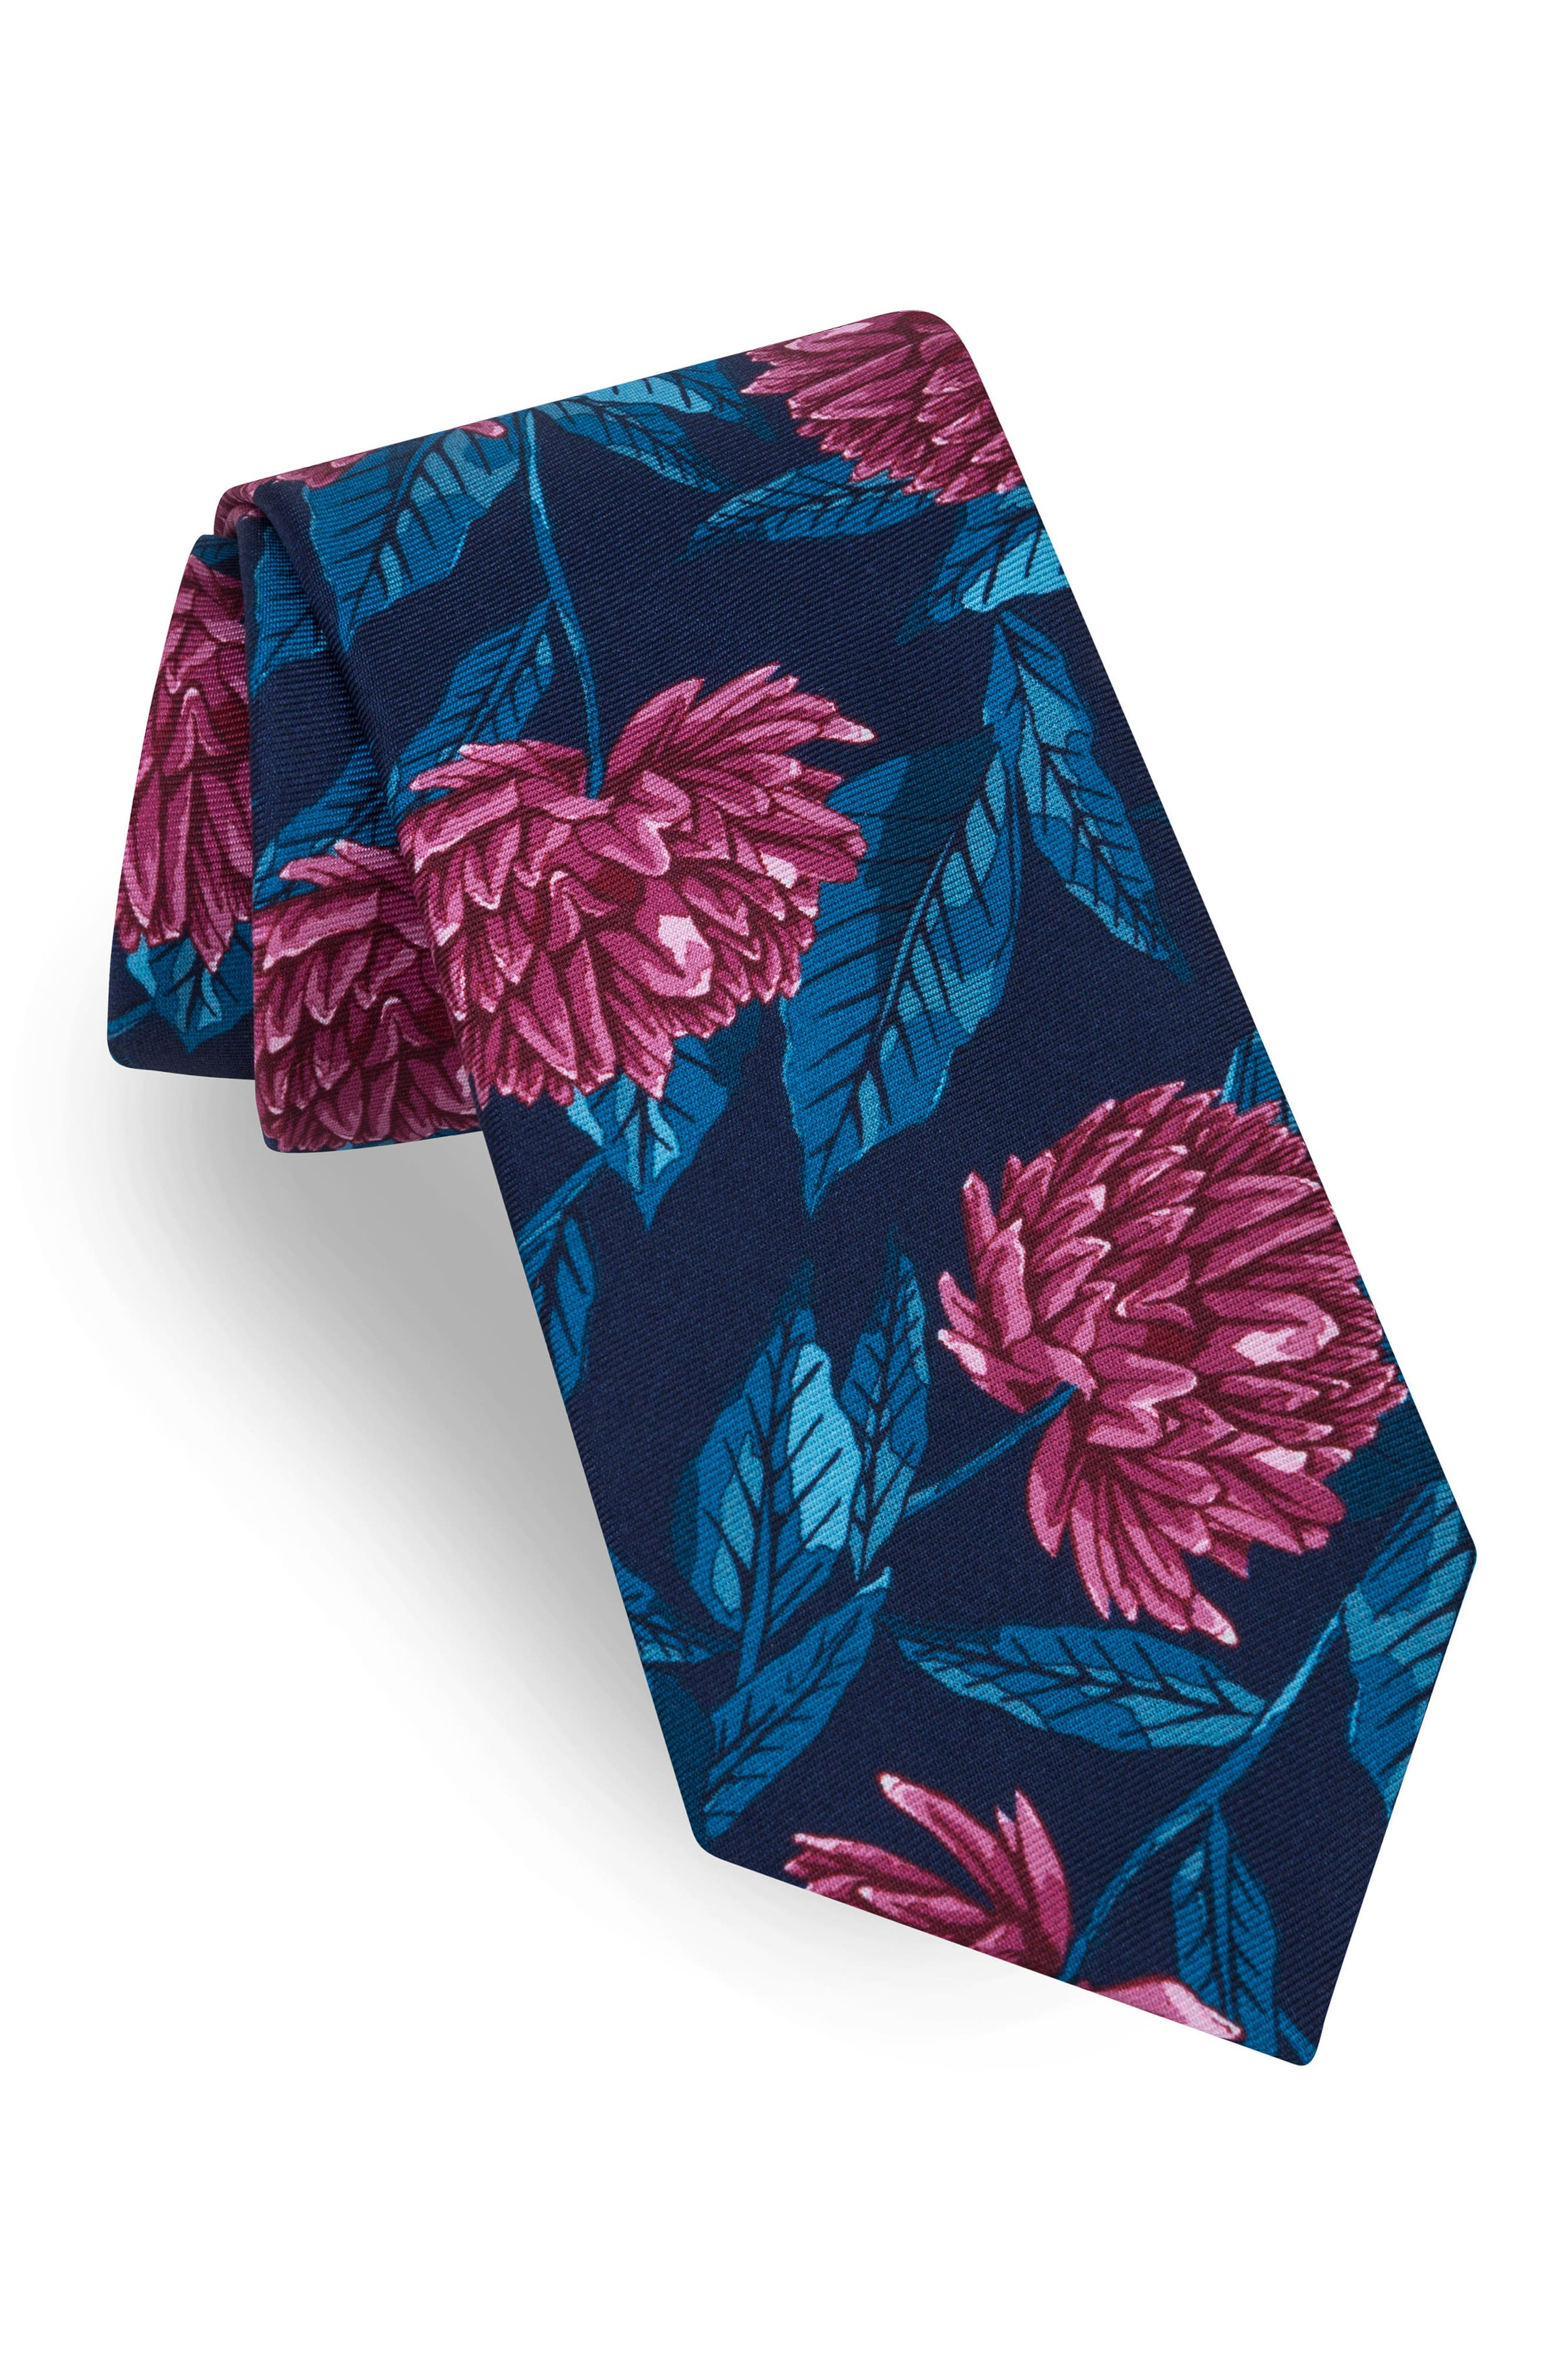 Oversize Flower Tie,                         Main,                         color, Red/ Blue